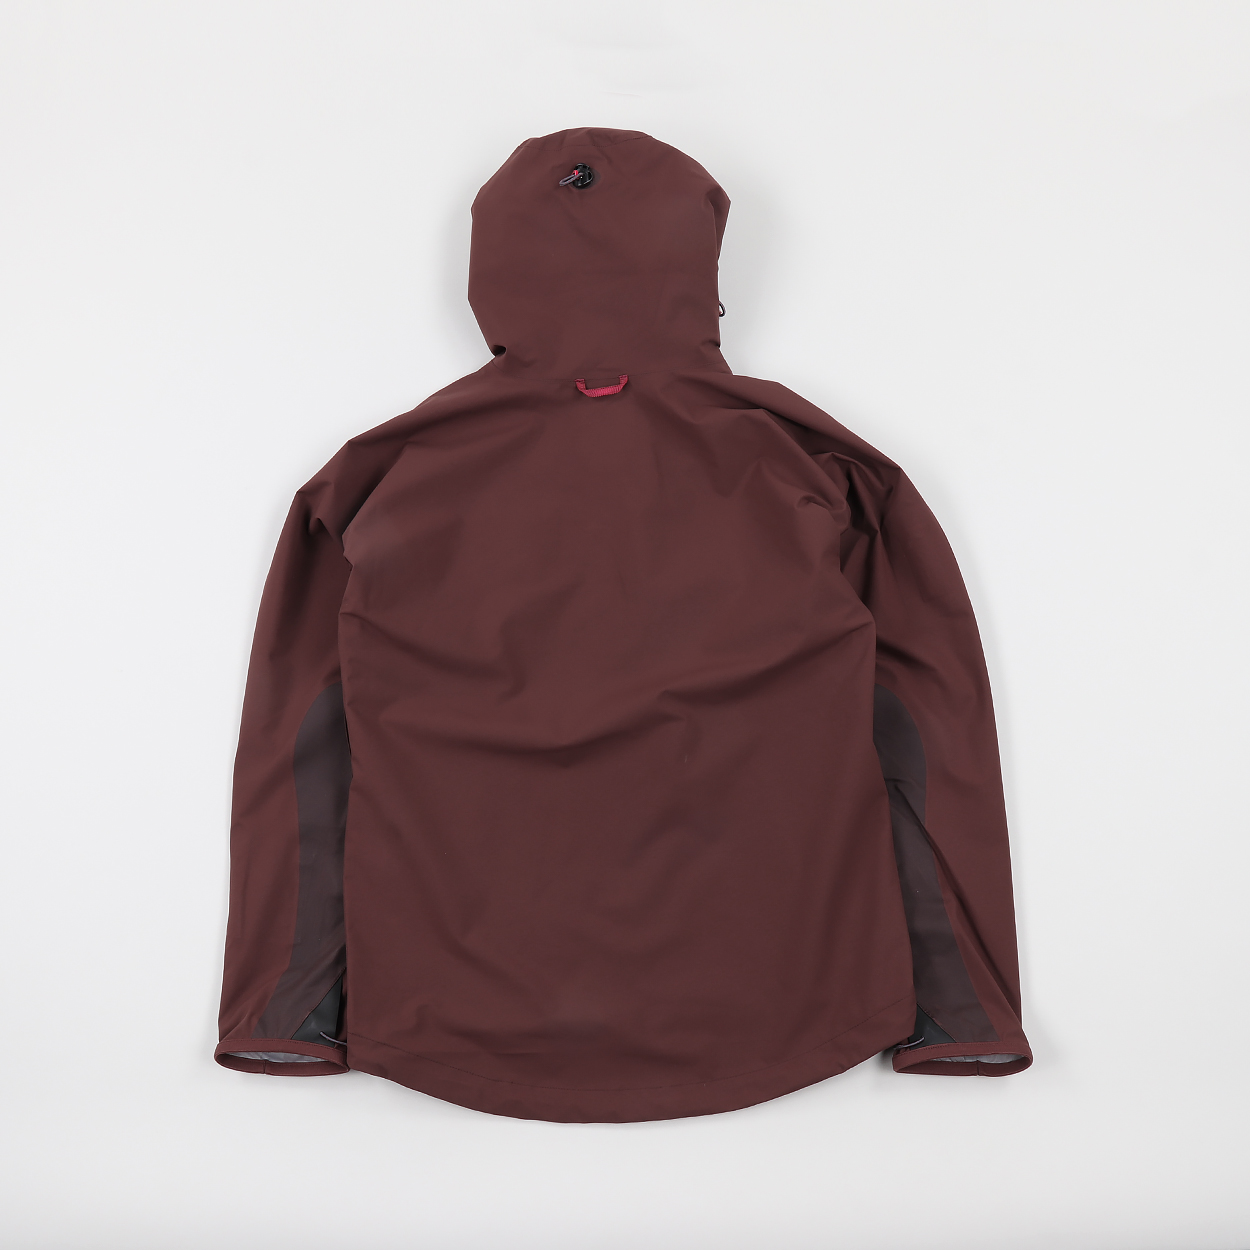 57c1fe42a The bestselling jacket from Sweden's Klattermusen, the Allgron is an  all-occasion lightweight outdoor shell made from 70% recycled polyester  with Duracoat, ...